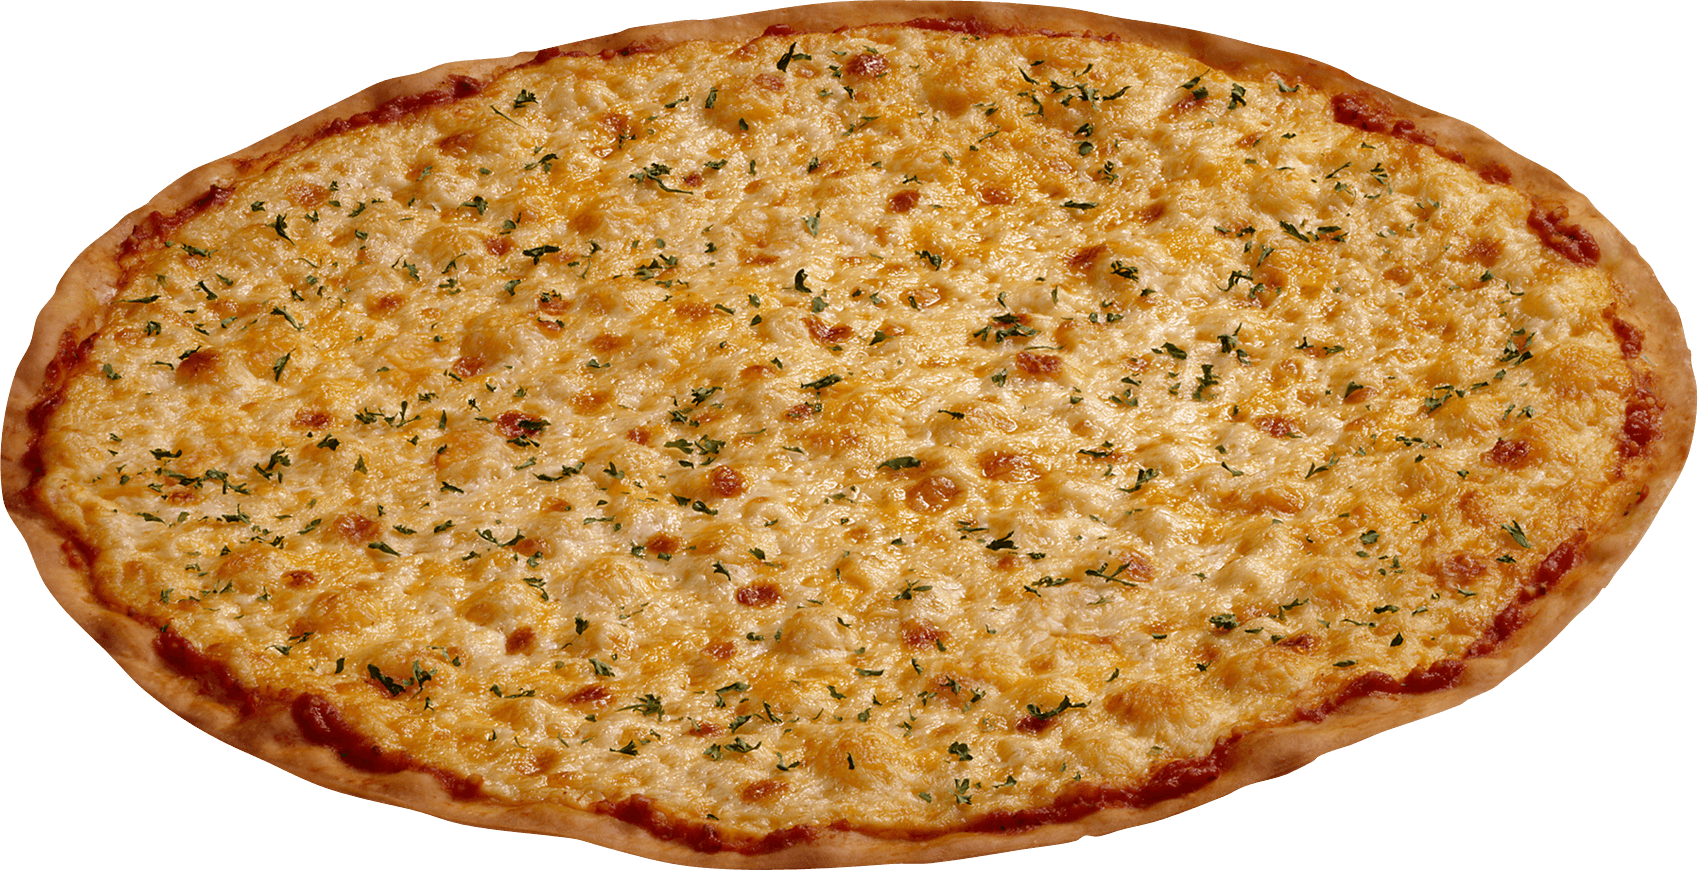 Pizza Png Image PNG Image - Pizza PNG